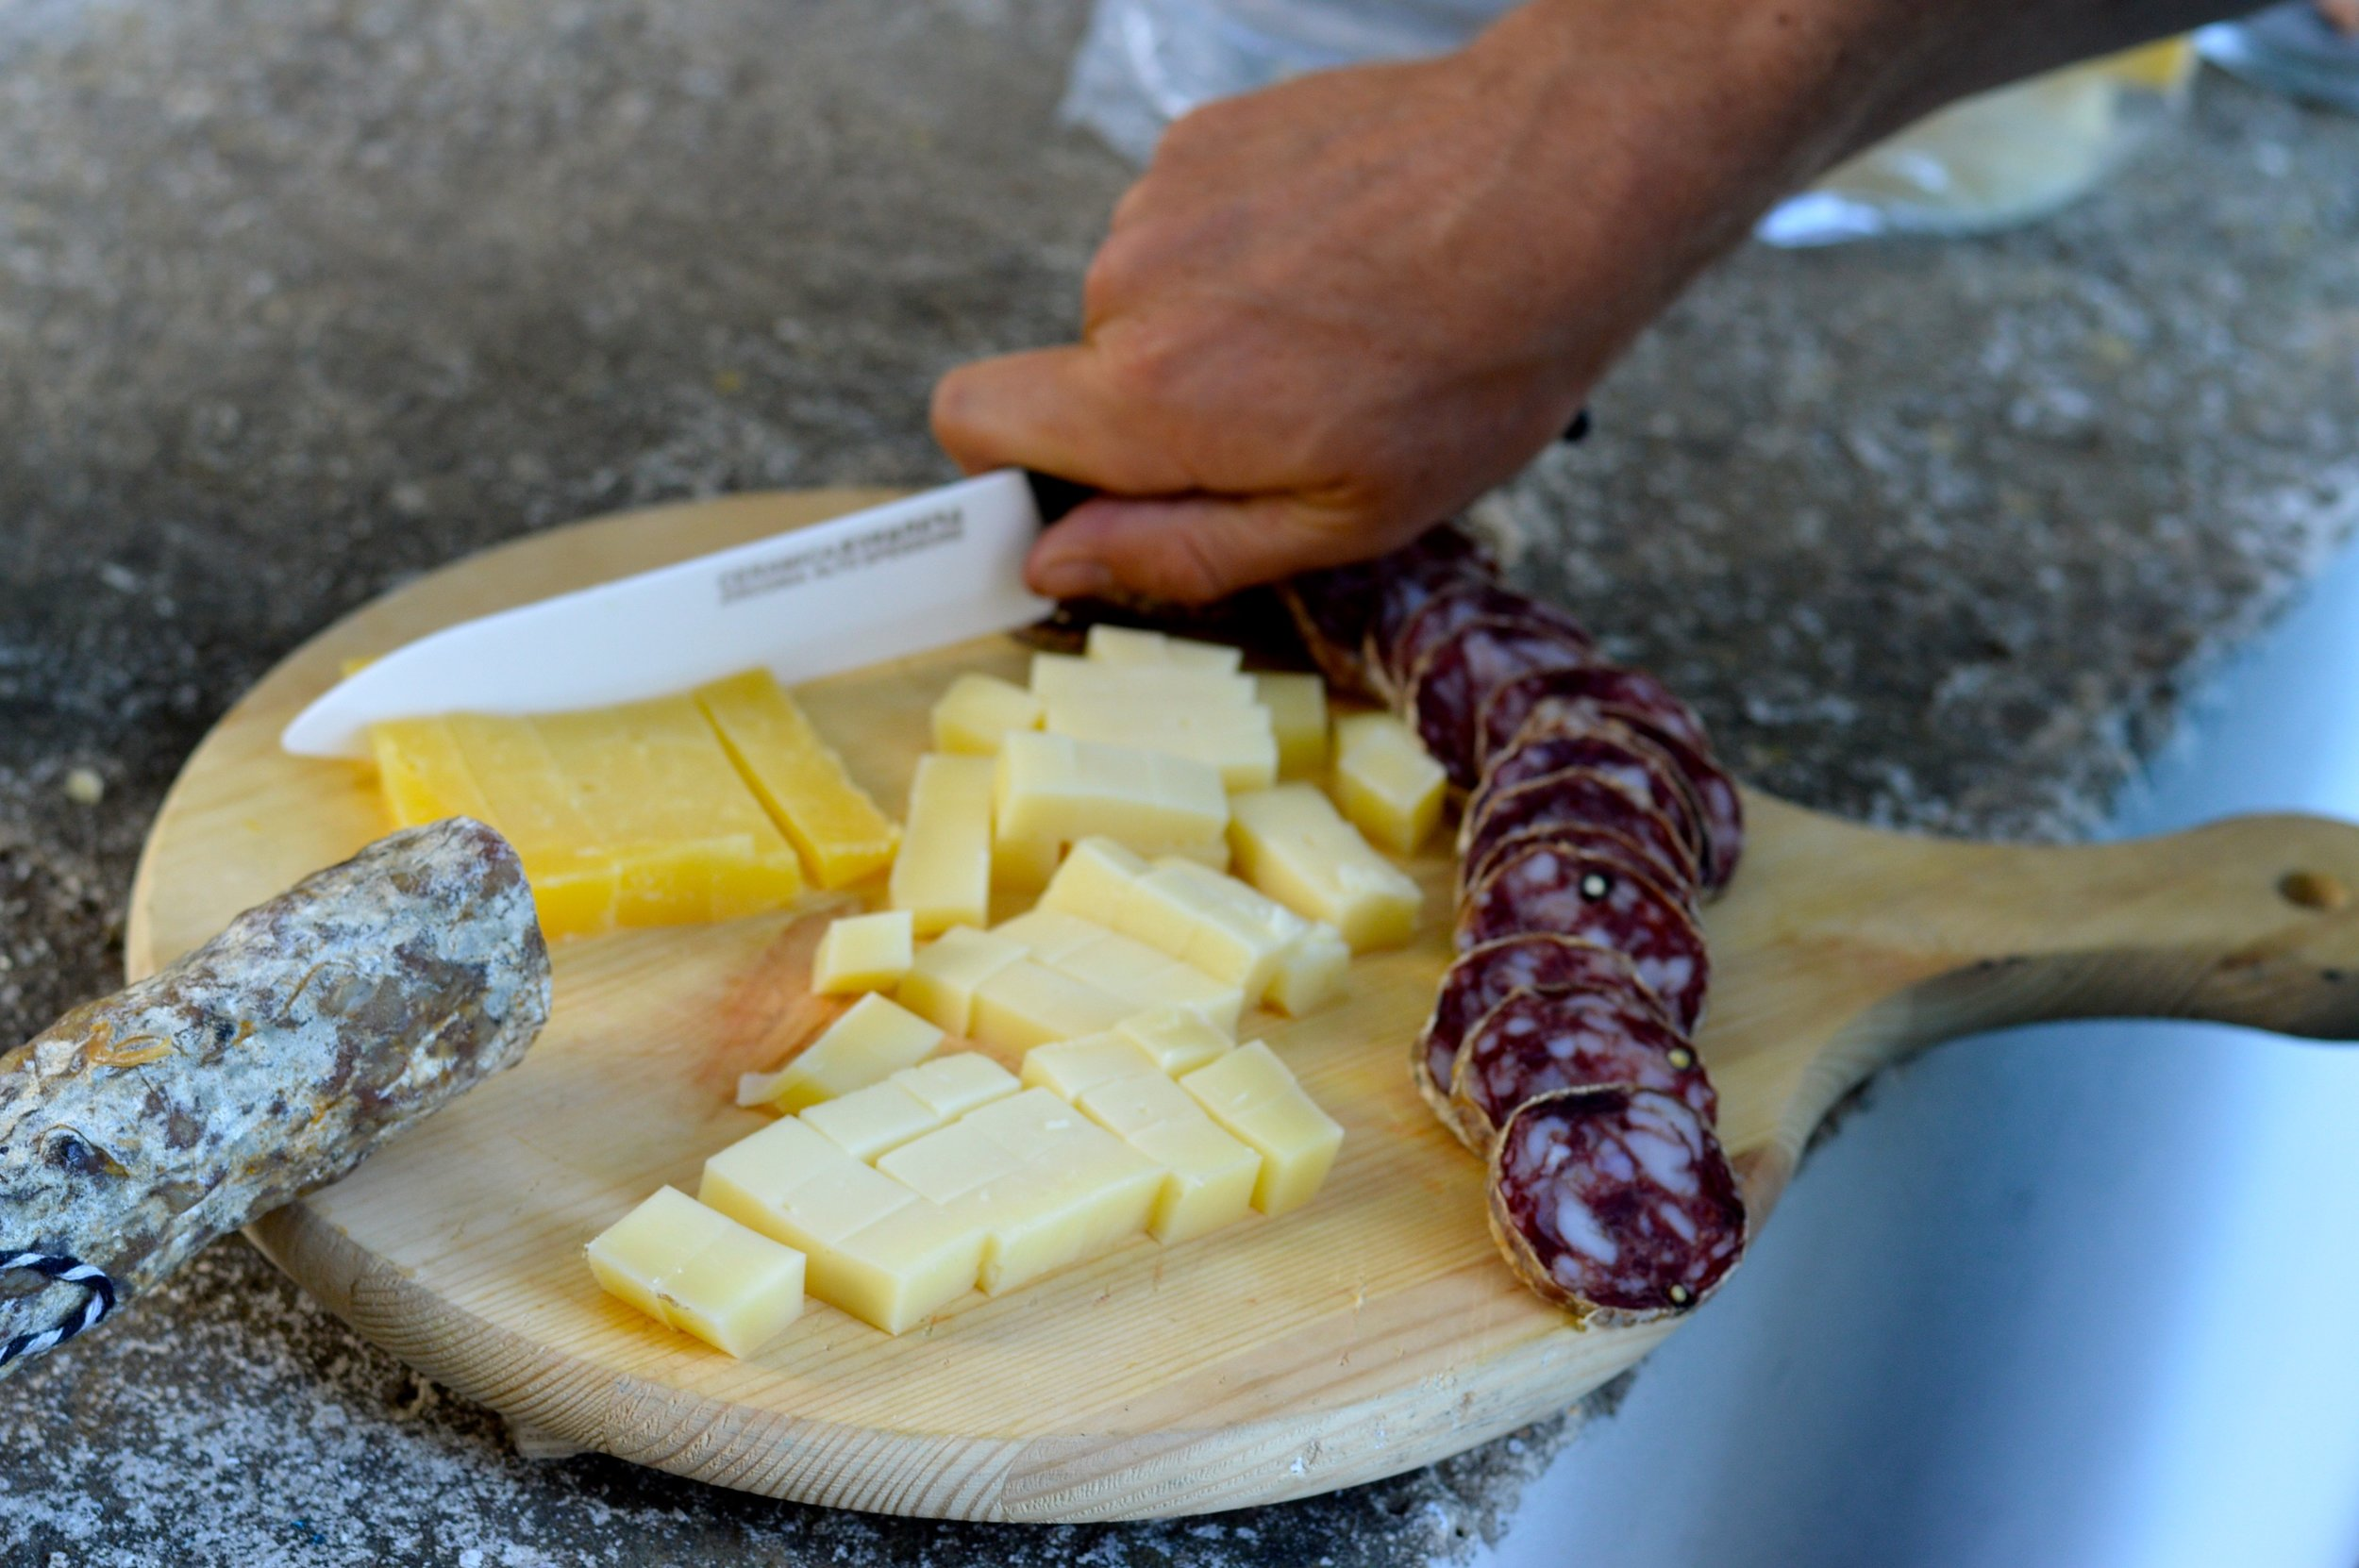 Board with Sicilian meats and cheeses